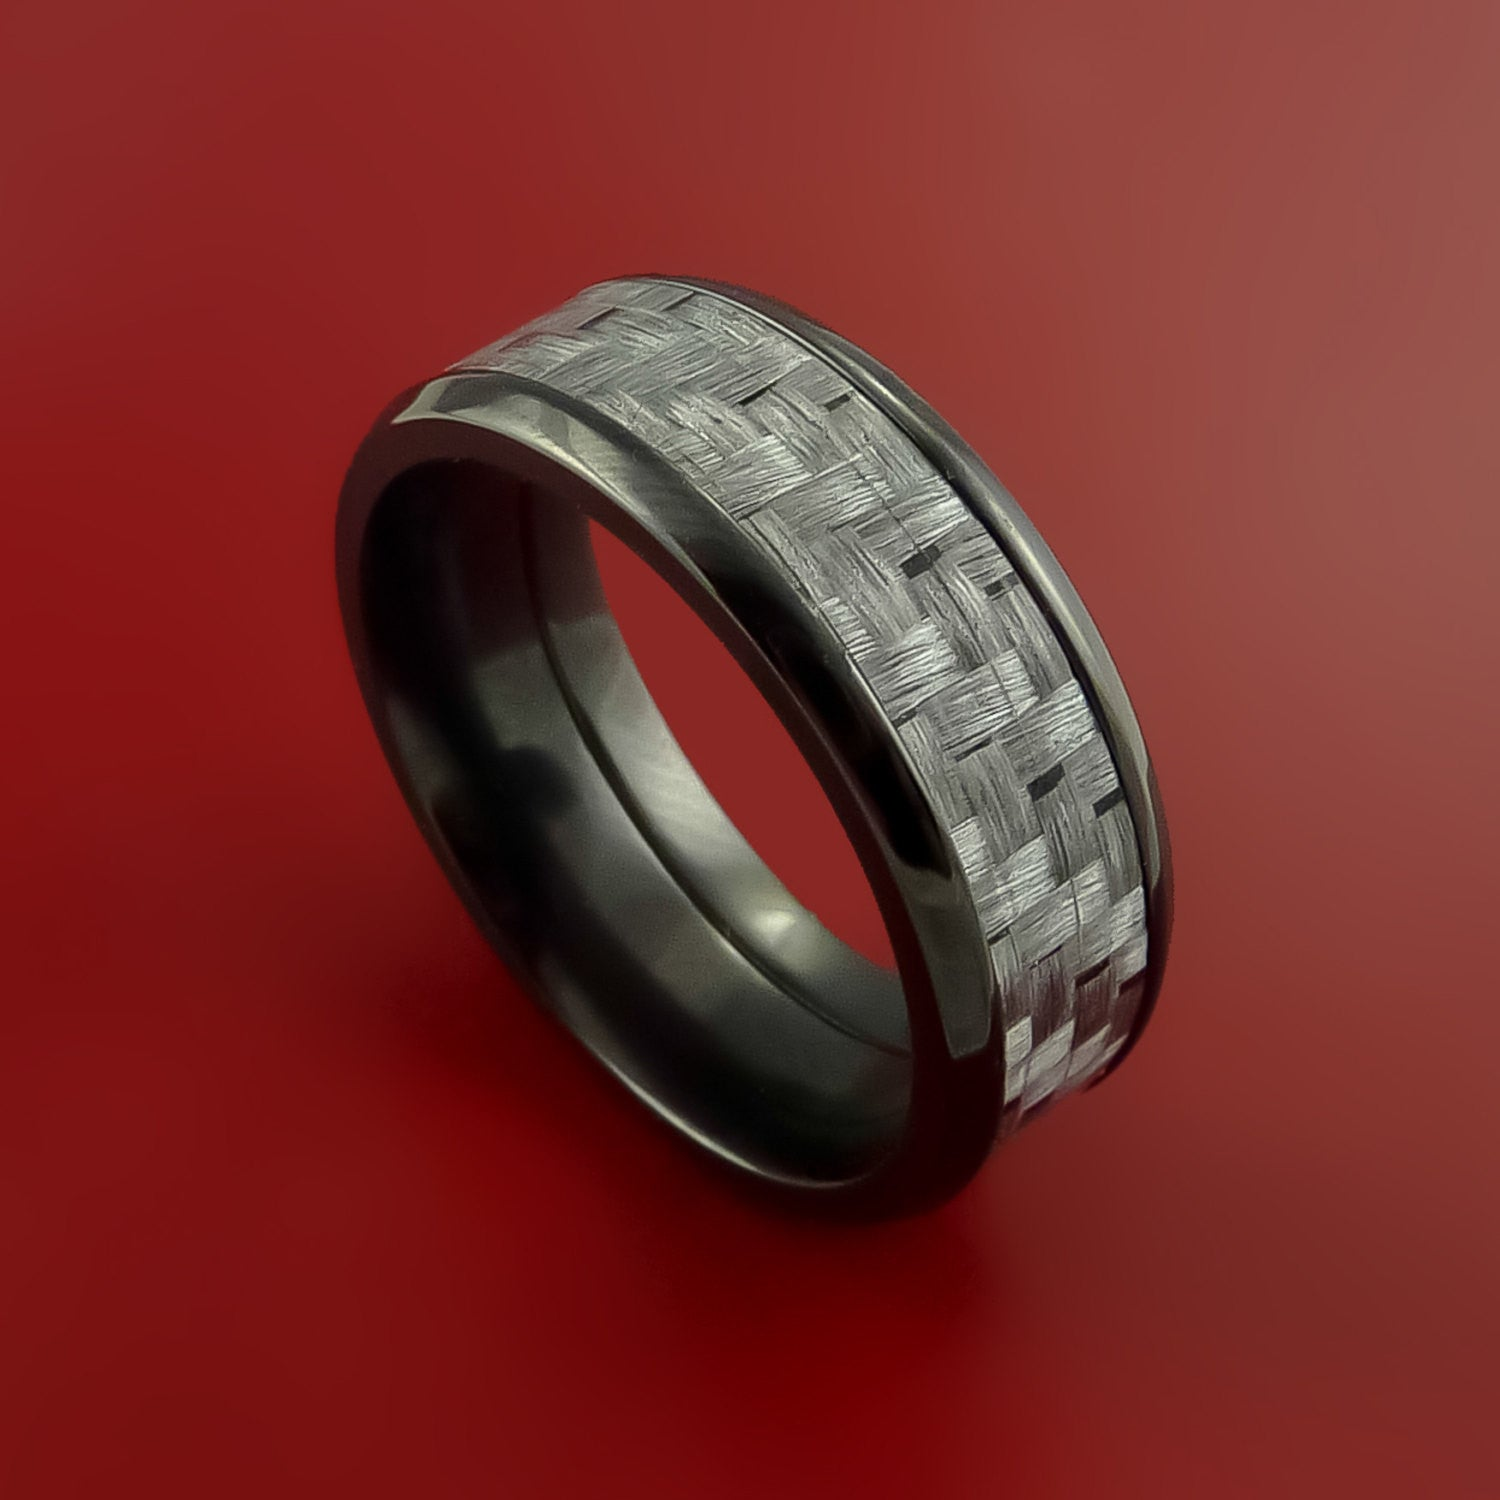 Black Zirconium Ring With Silver Carbon Fiber Inlay Custom